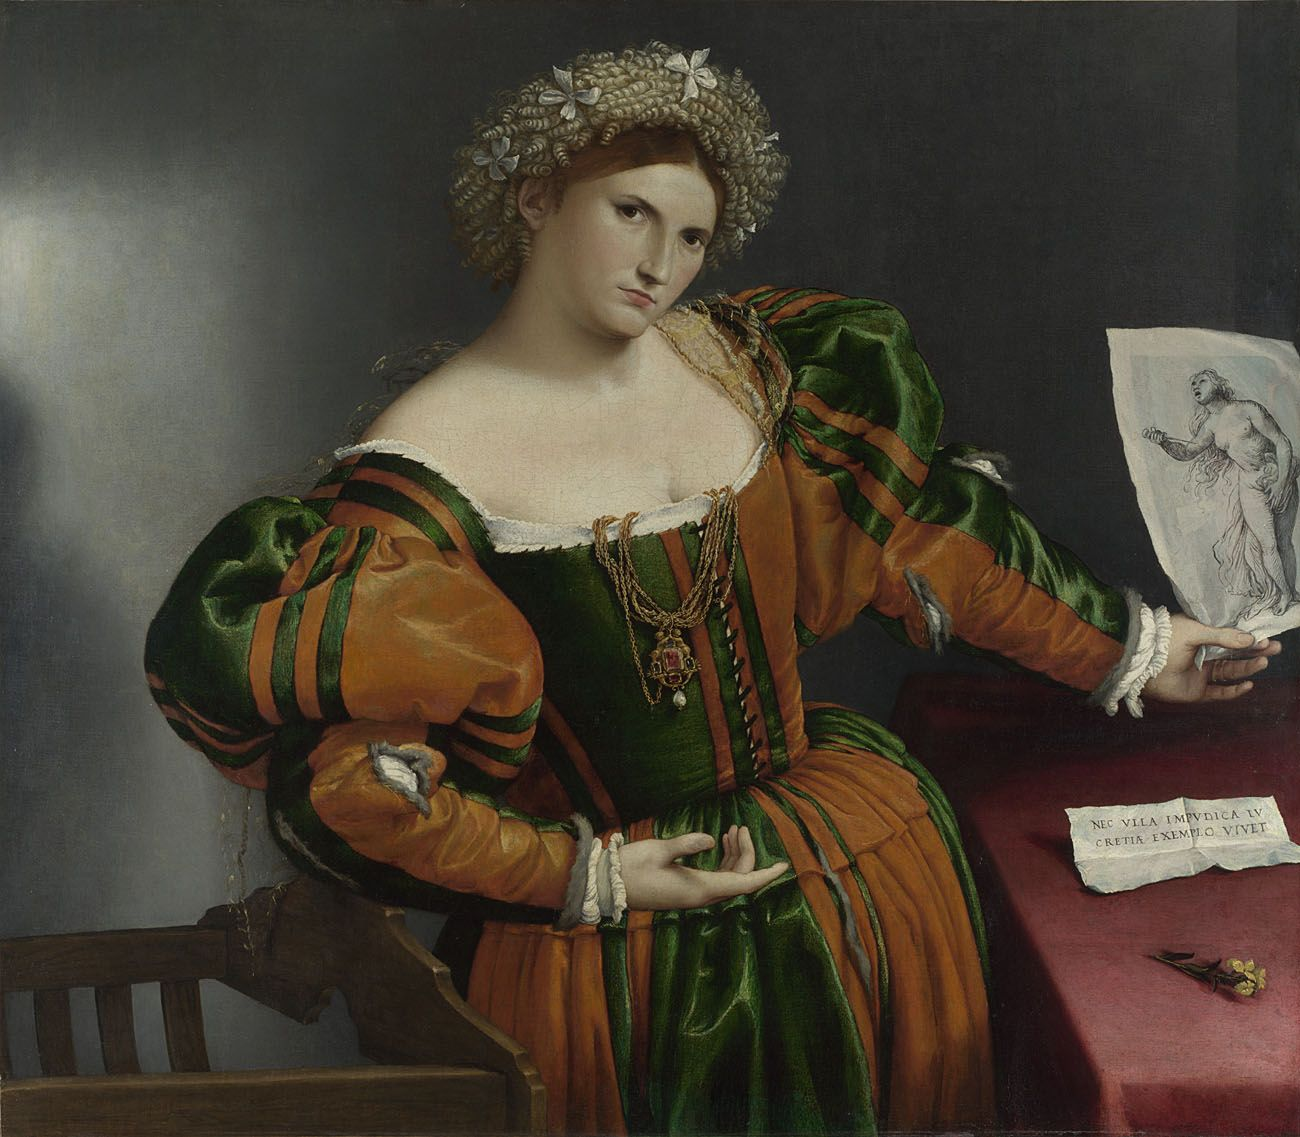 Lorenzo Lotto  Portrait of a Woman inspired by Lucretia  about 1530-2  Oil on canvas  96.5 x 110.6 cm  © The National Gallery, London